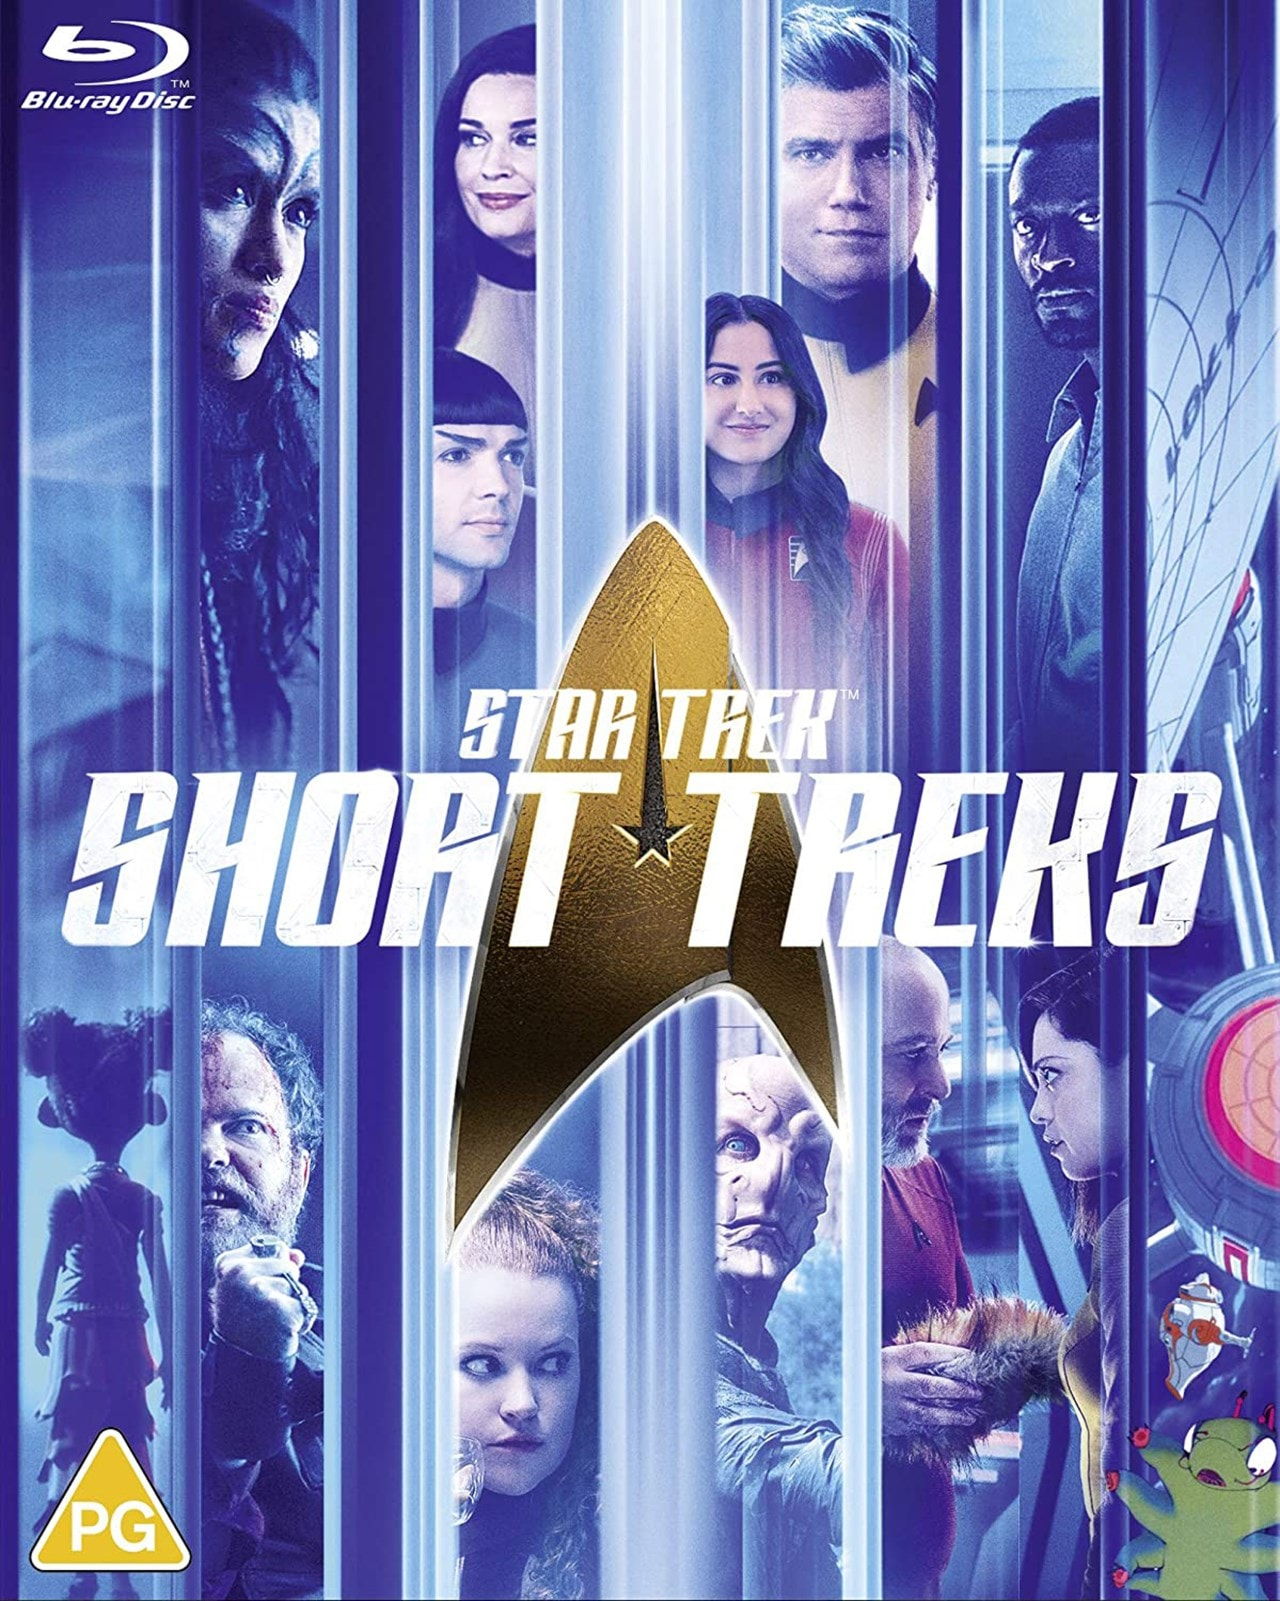 Star Trek - Short Treks - 1